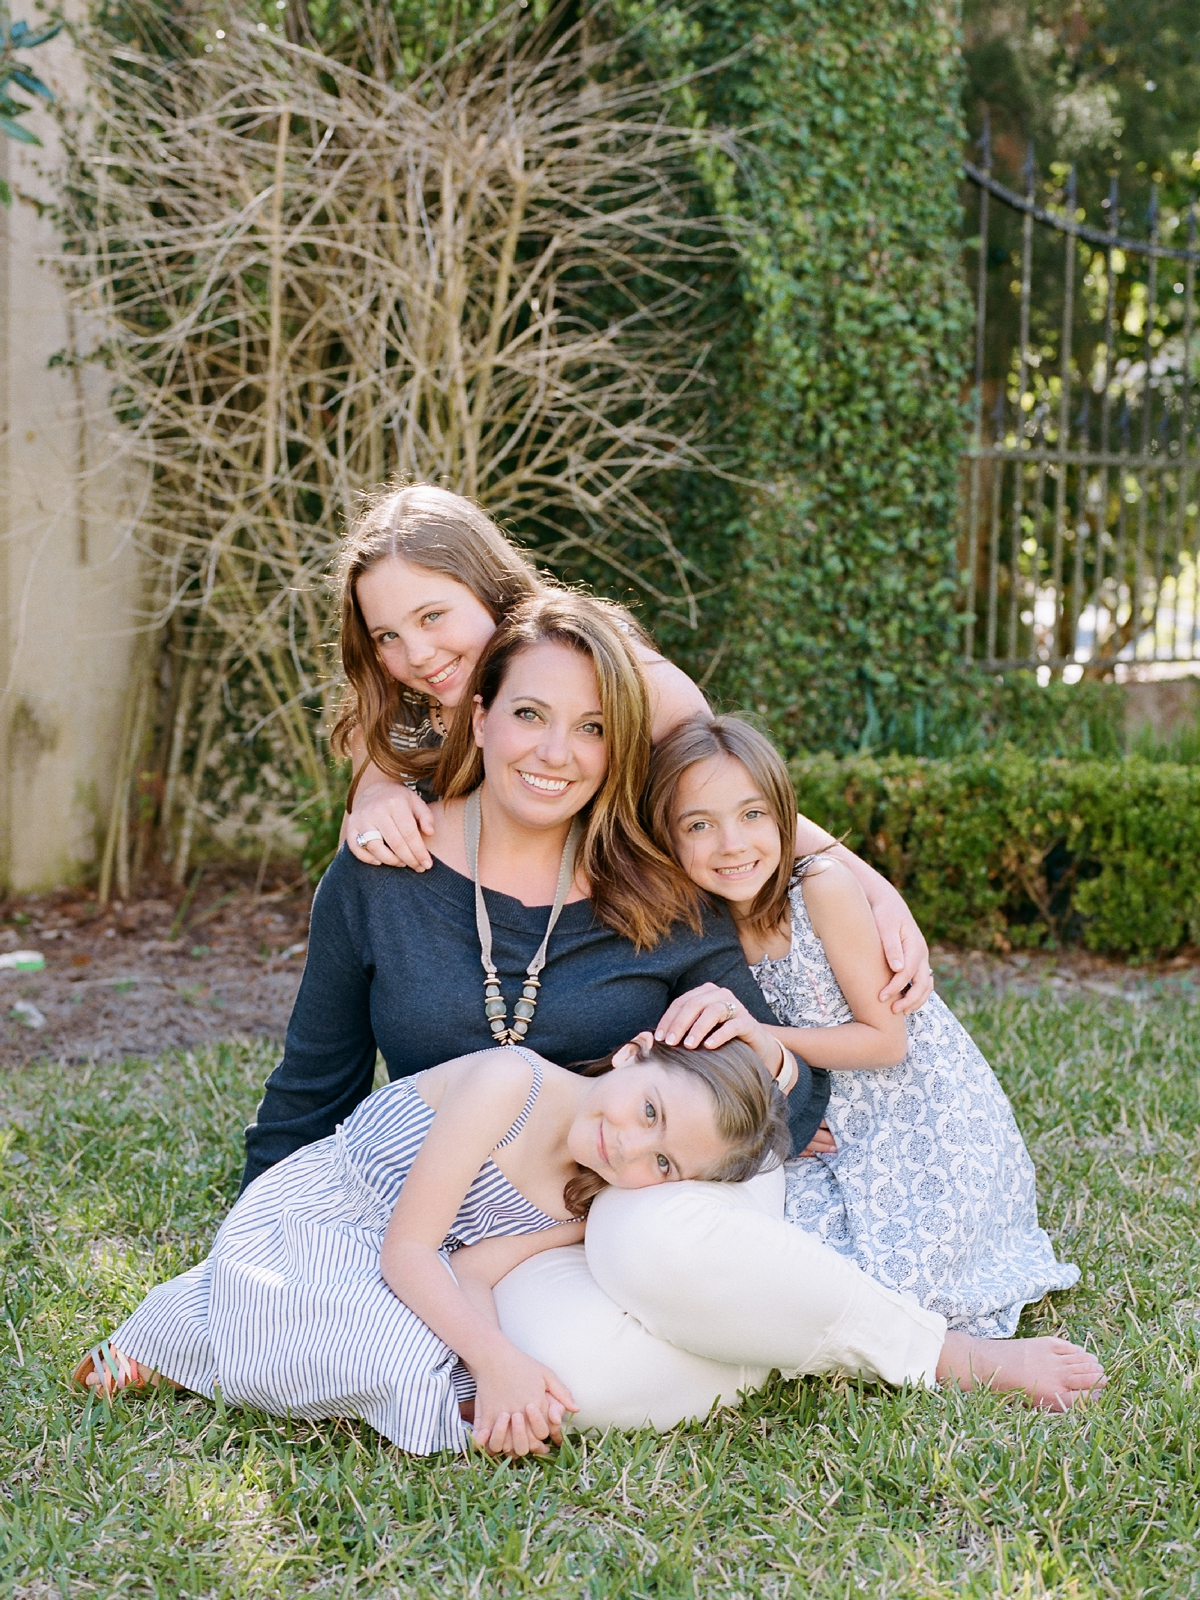 sea_island_family_photographer_sea_island_georgia_ogilvie_shannon_griffin_0002.jpg